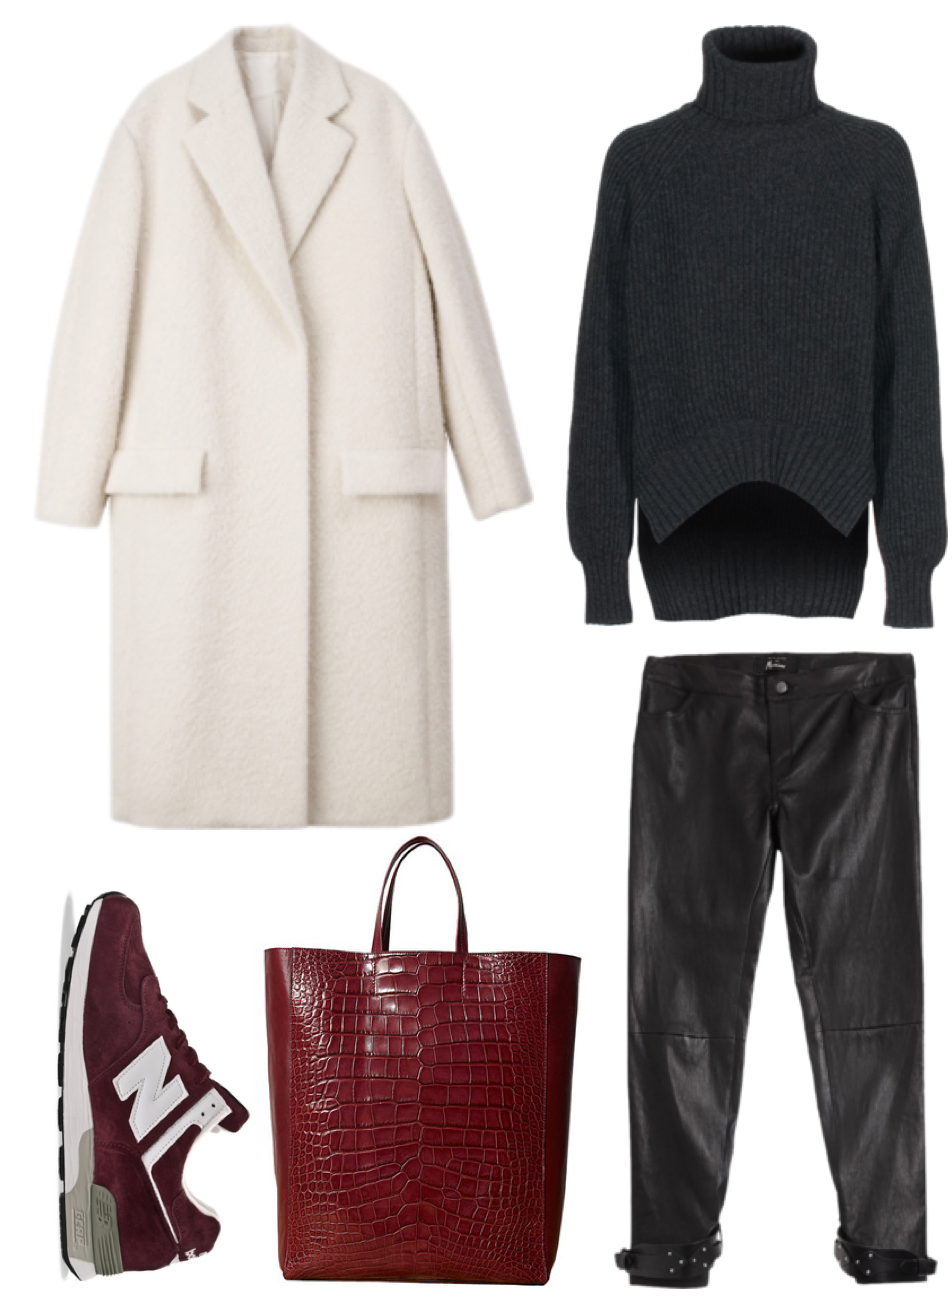 Phoebe Philo outfit